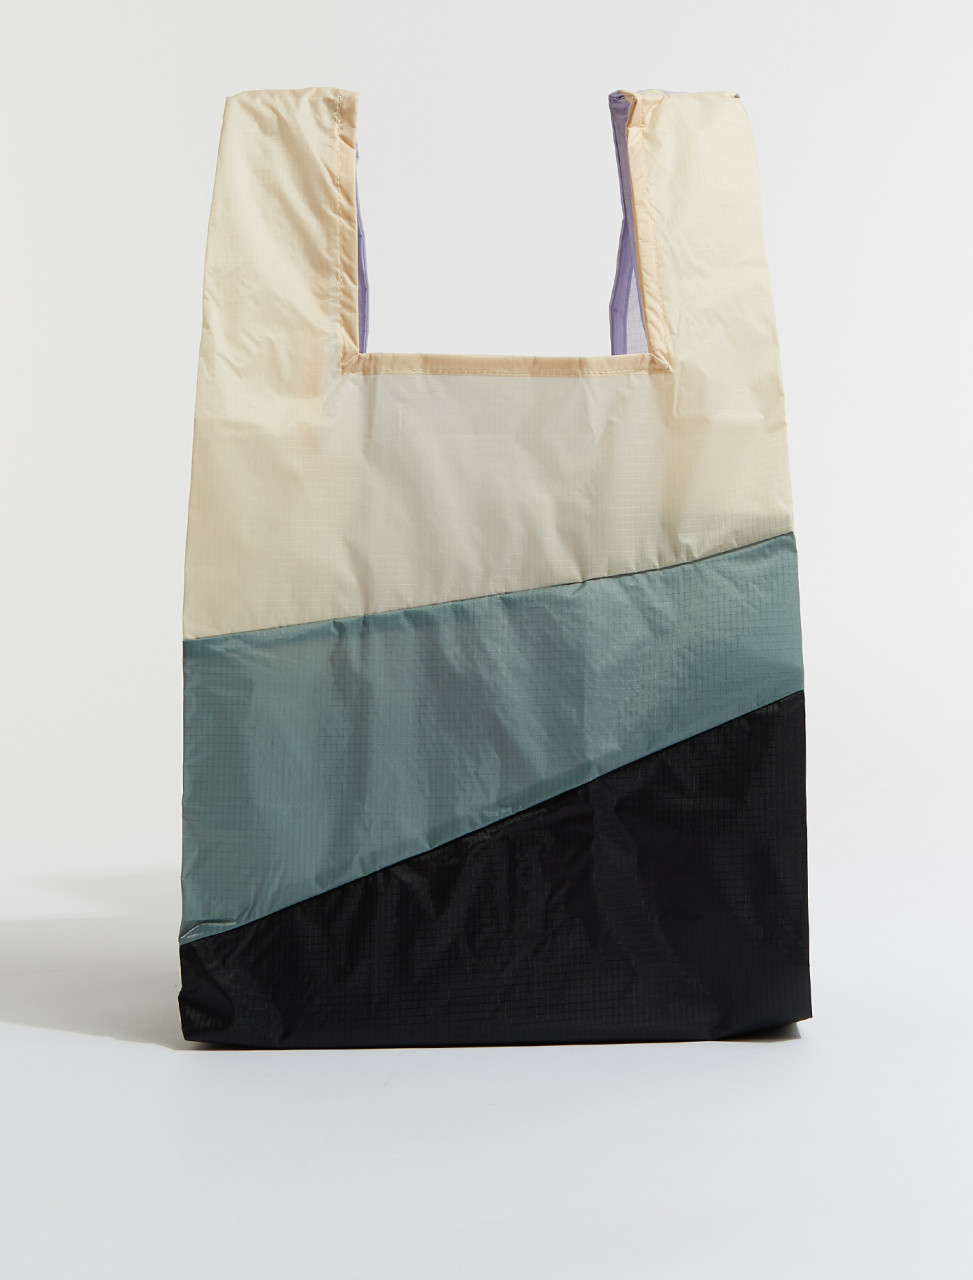 283-507662 HAY COLOUR NO 2 SIX COLOUR BAG